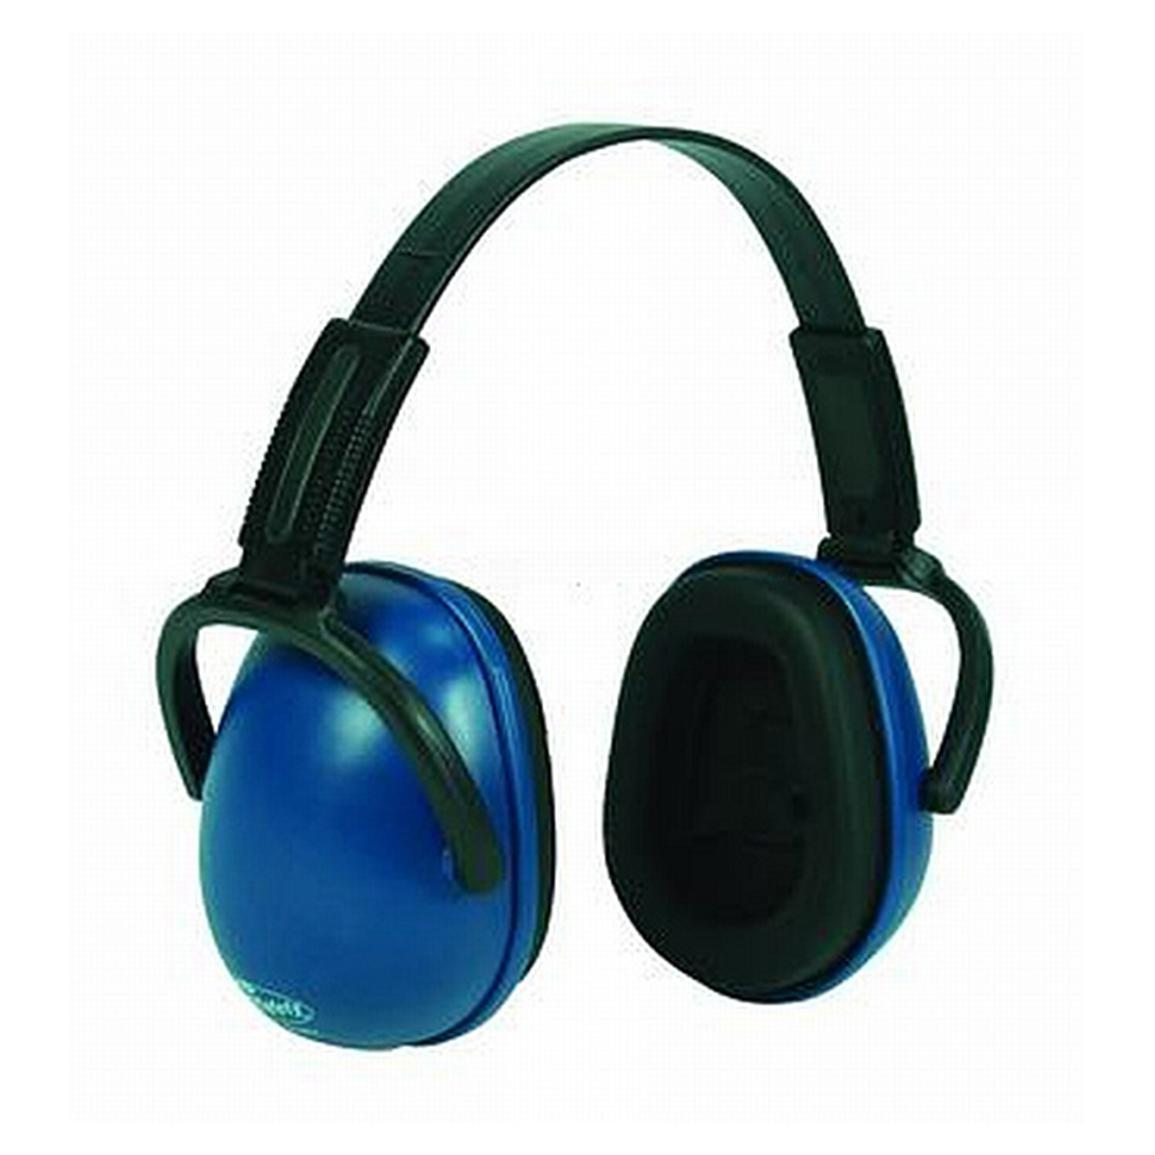 Peltor® Folding Hearing Protection Ear Muffs